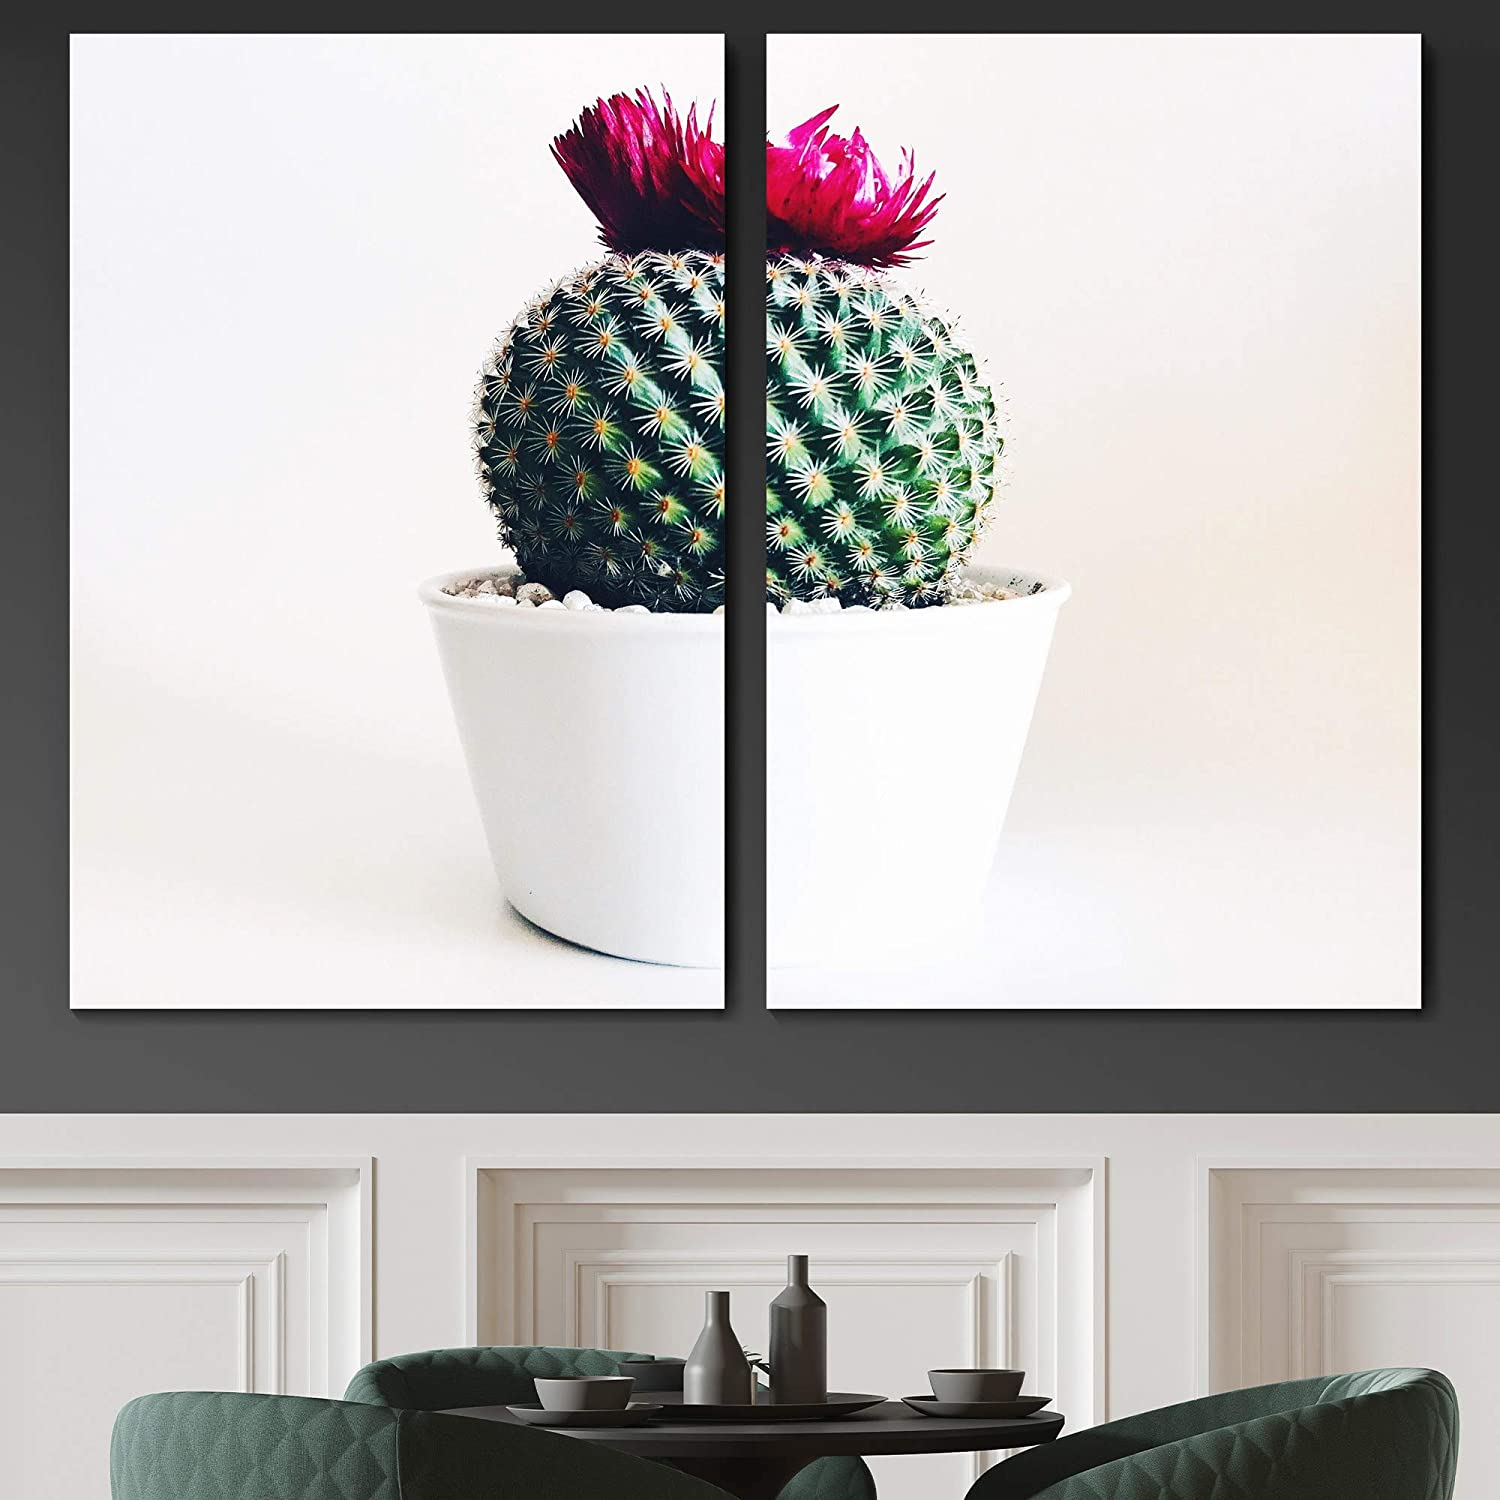 Sign Leader Potted Cactus Flower Wall Art Botanical Canvas Print for Living Room Bedroom Colorful Floral Realism Photography - 24x36 x 2 Panels